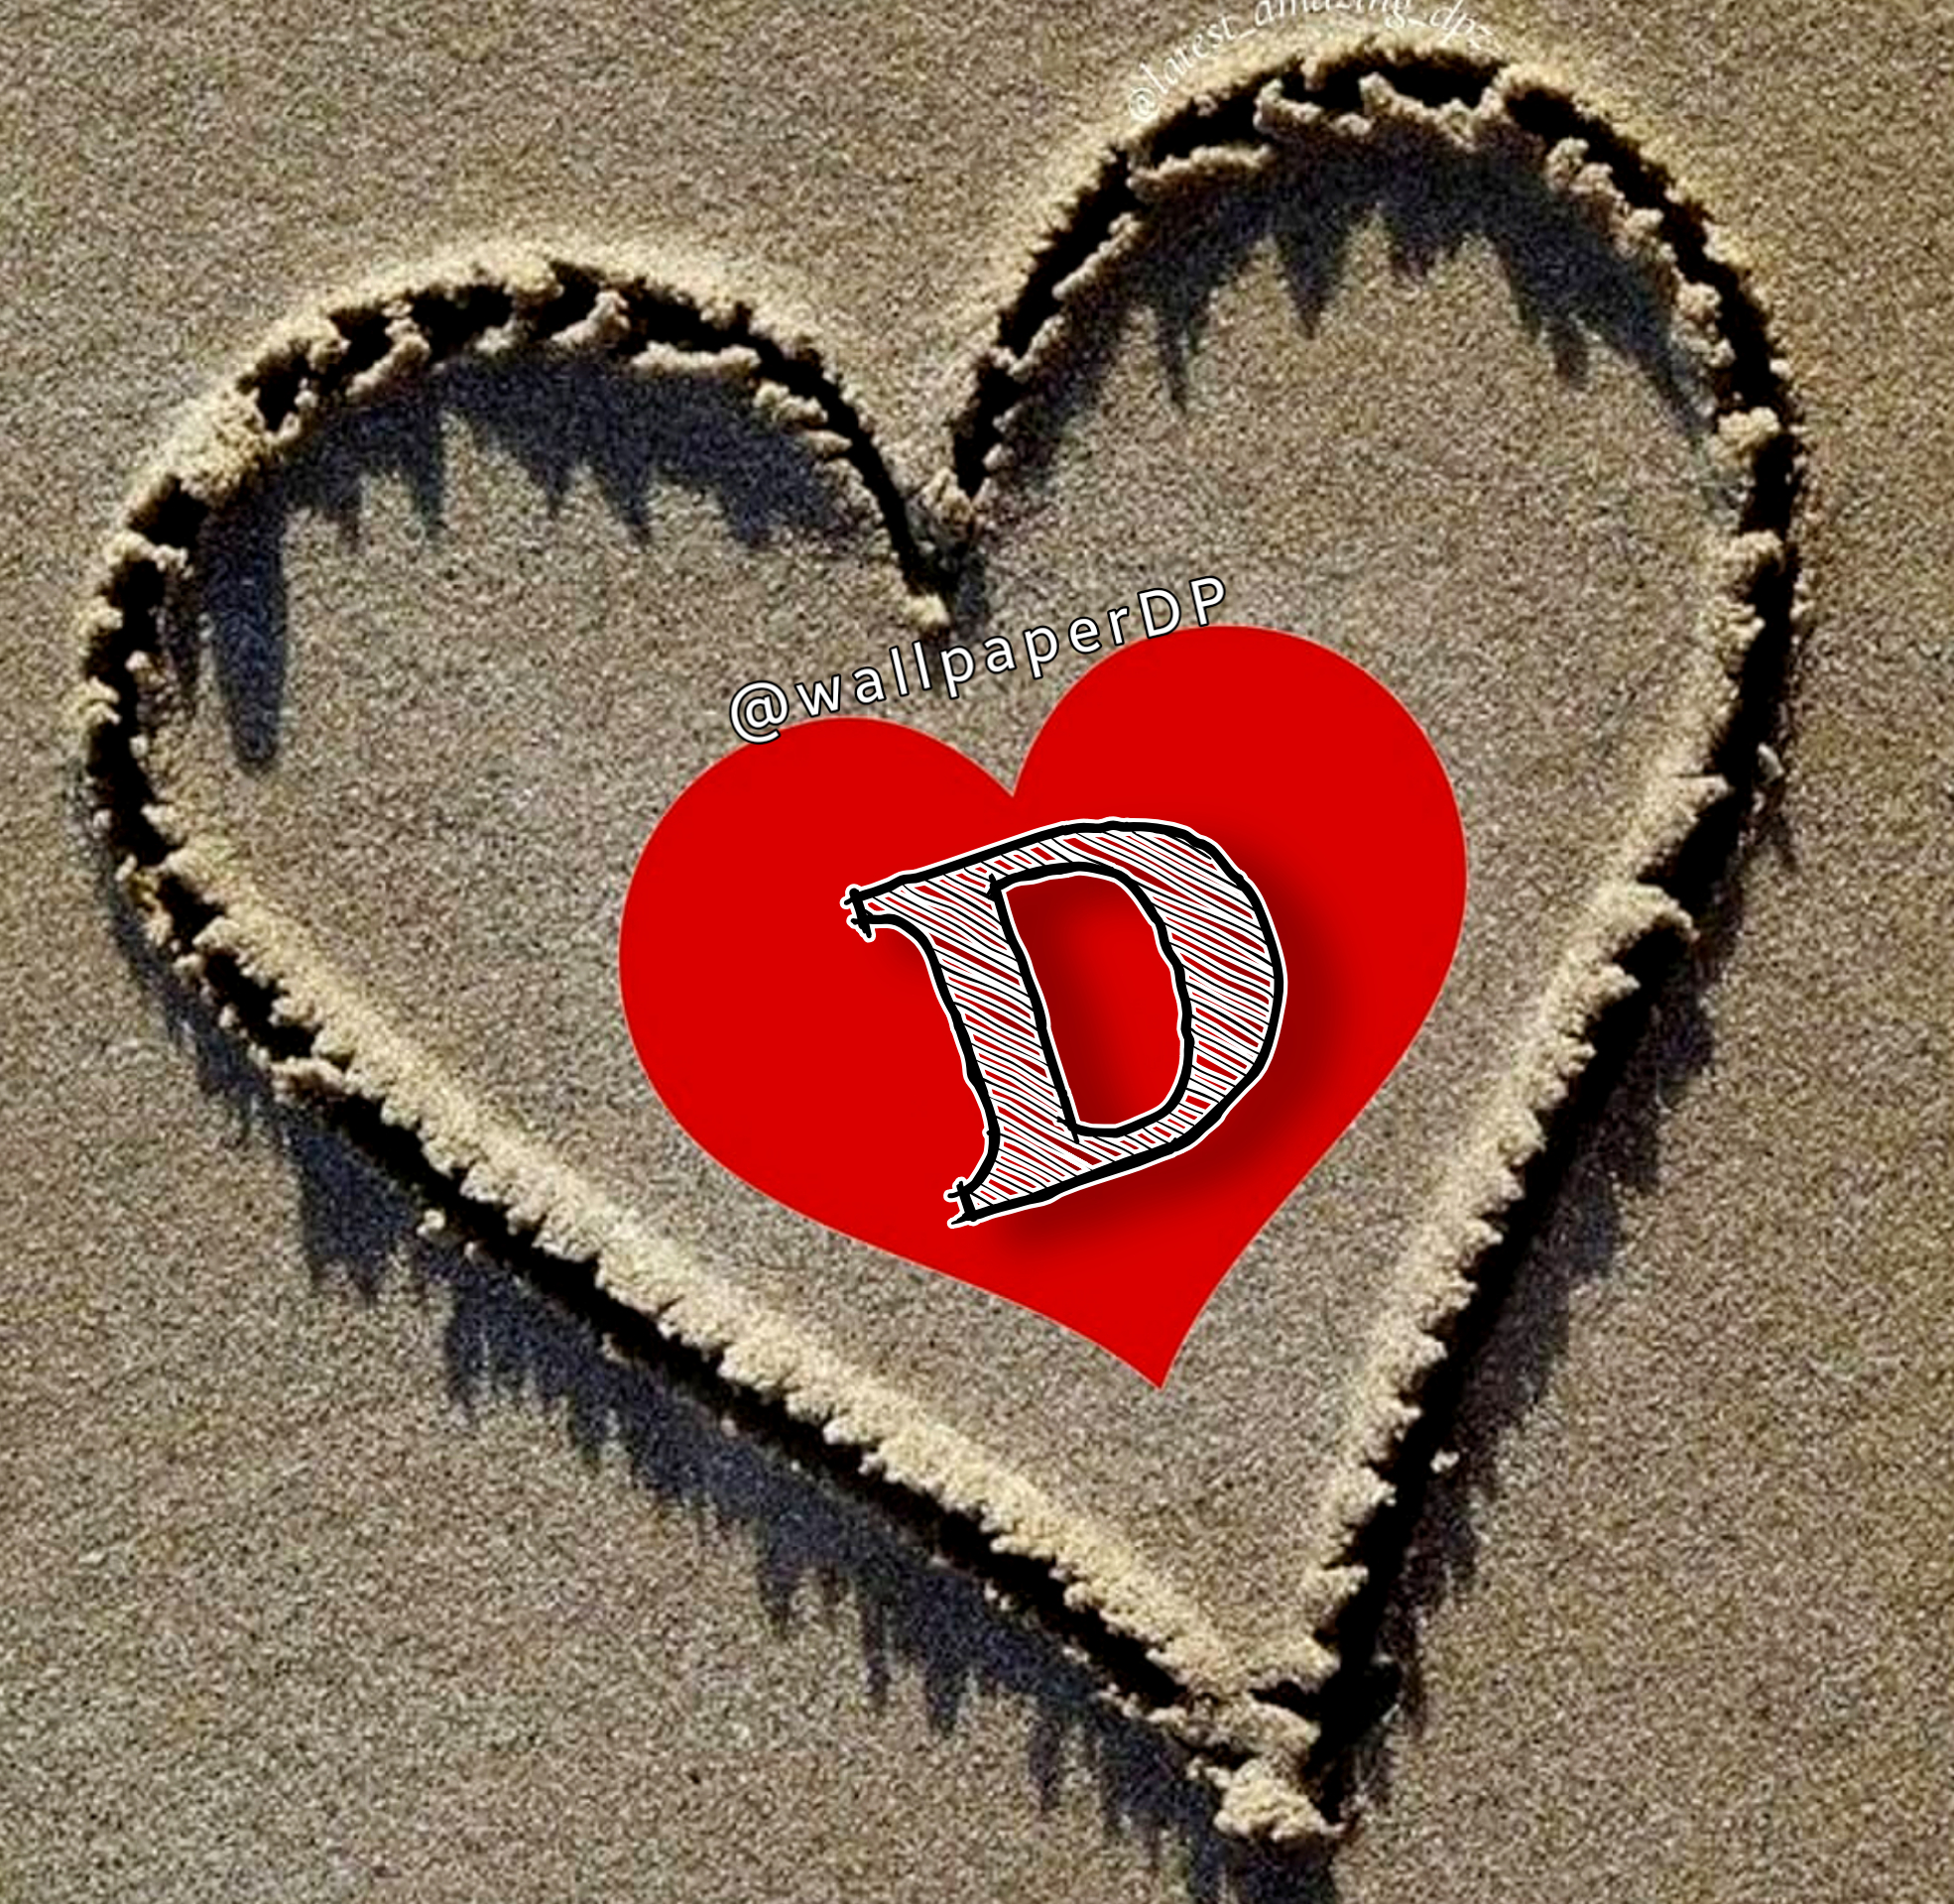 Write Alphabet pictures for Dp on Beach Sand Heart Shape for